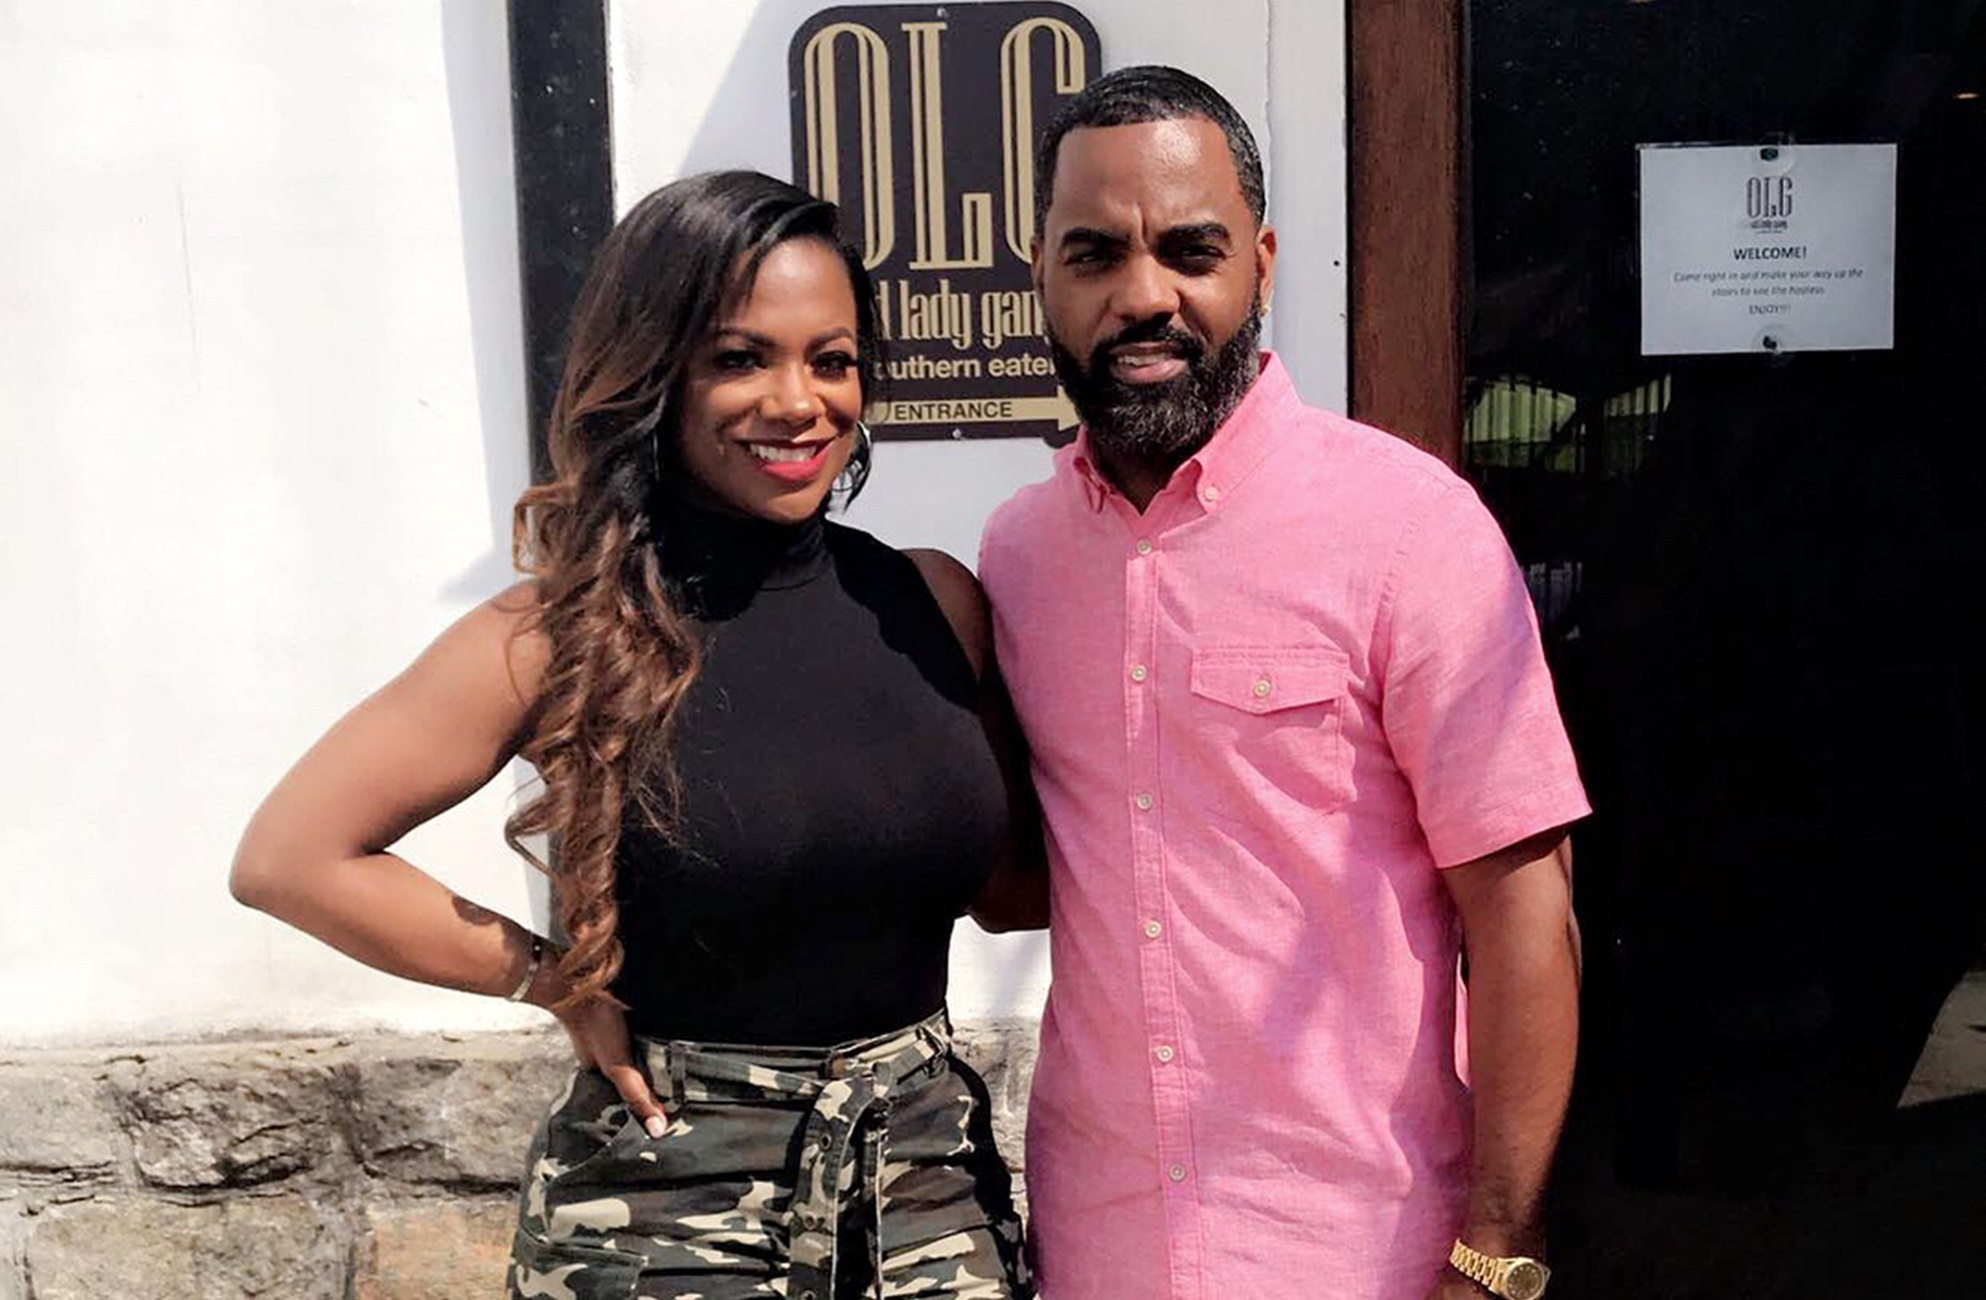 Kandi Burruss And Todd Tucker Graced The Cover Of Upscale Magazine - The Power Couple Looks Great